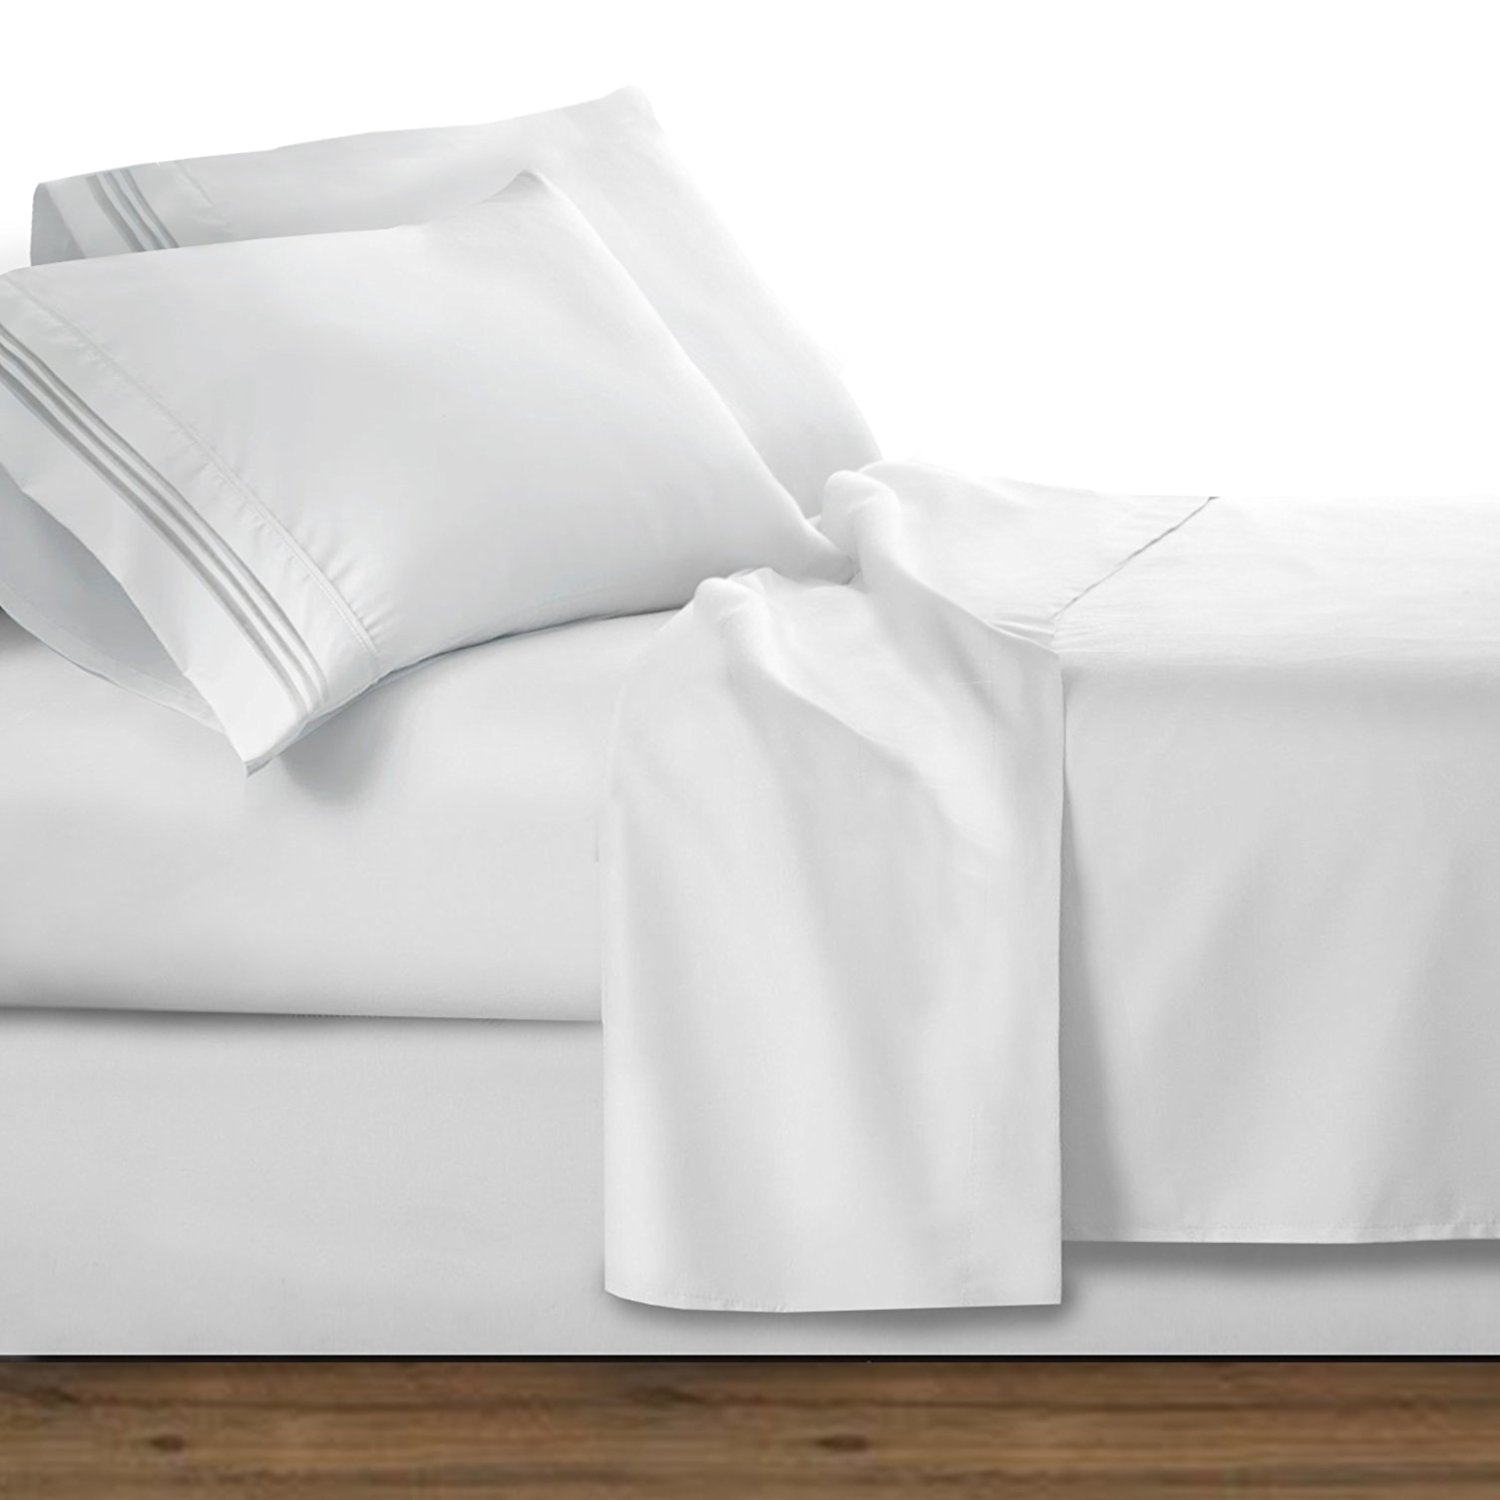 Elegant Comfort  1500 Thread Count Egyptian Quality Wrinkle and Fade Resistant 4-Piece Bed Sheet set, Deep Pocket, HypoAllergenic - Queen, White